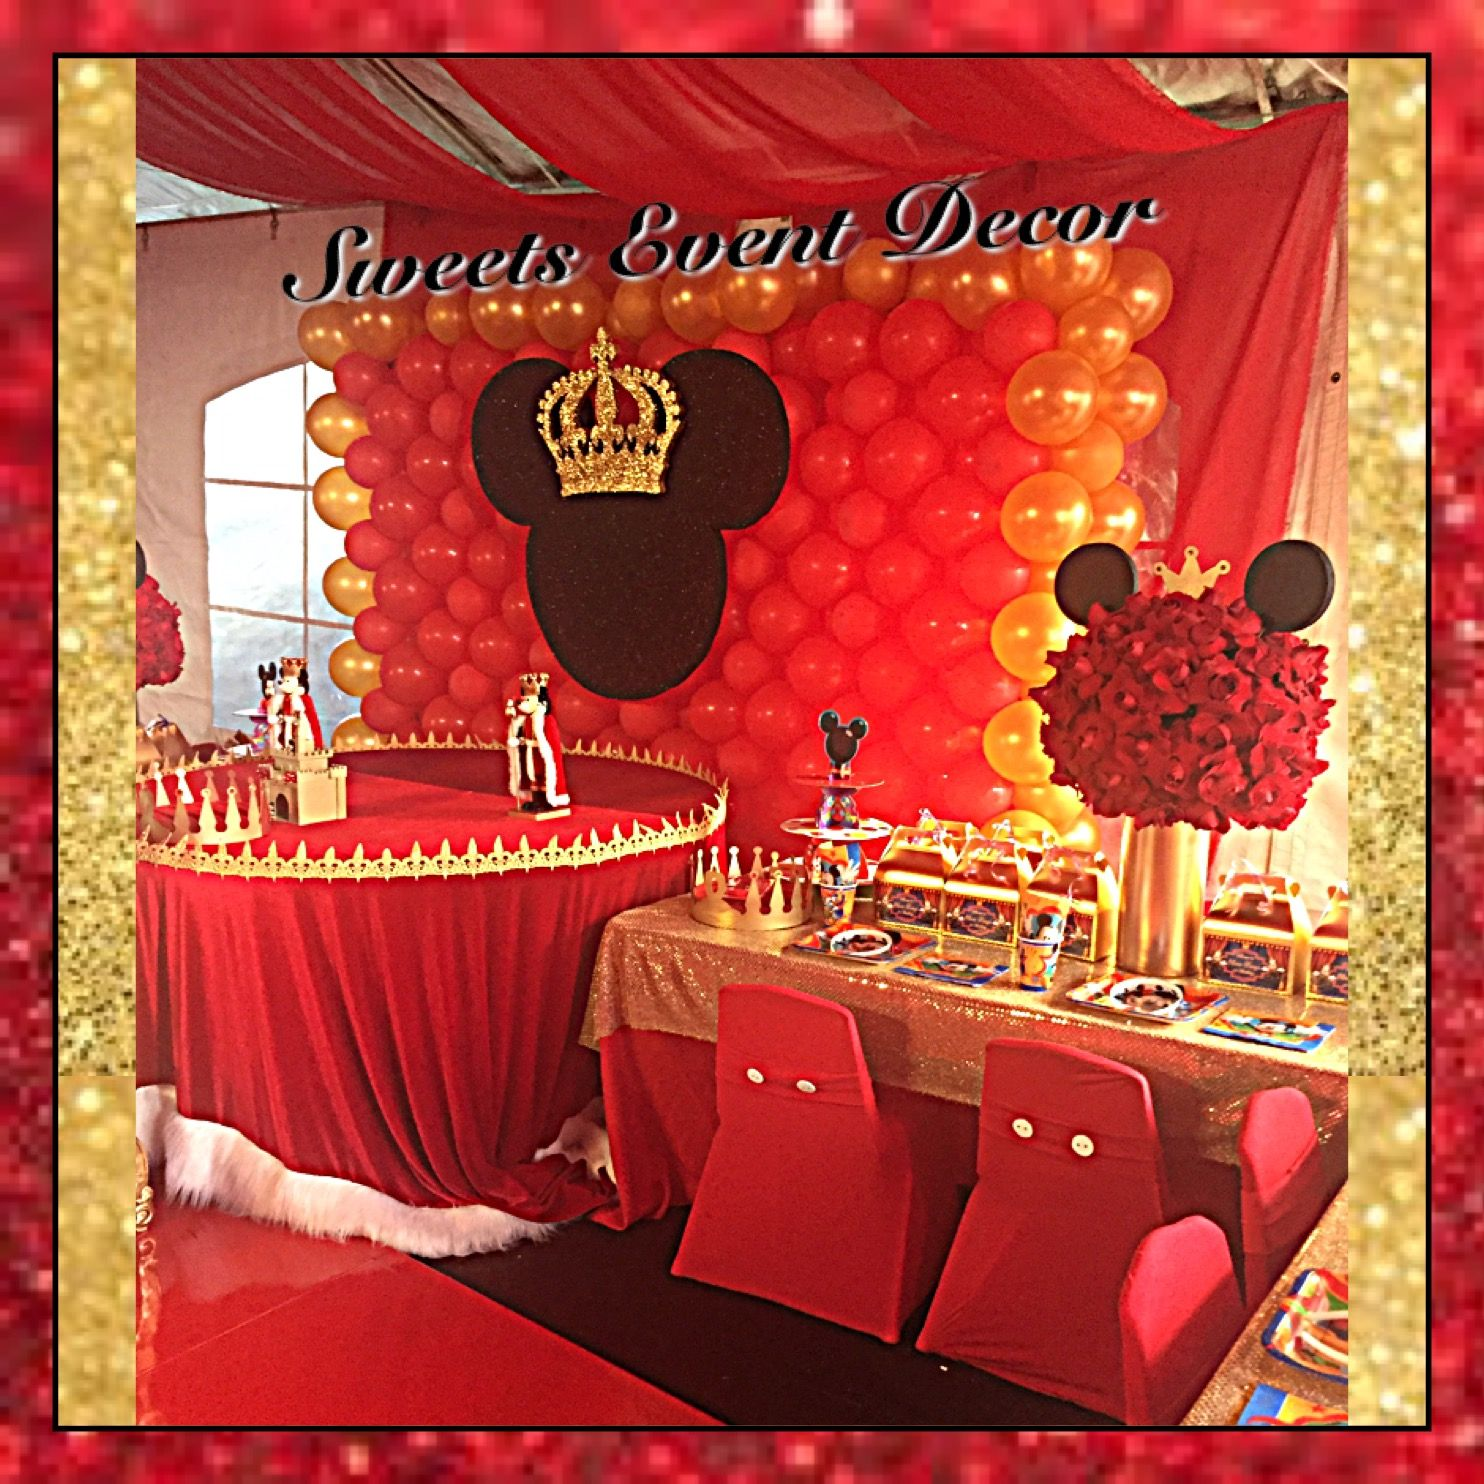 royal prince mickey mouse decor by: sweets event decor | floral